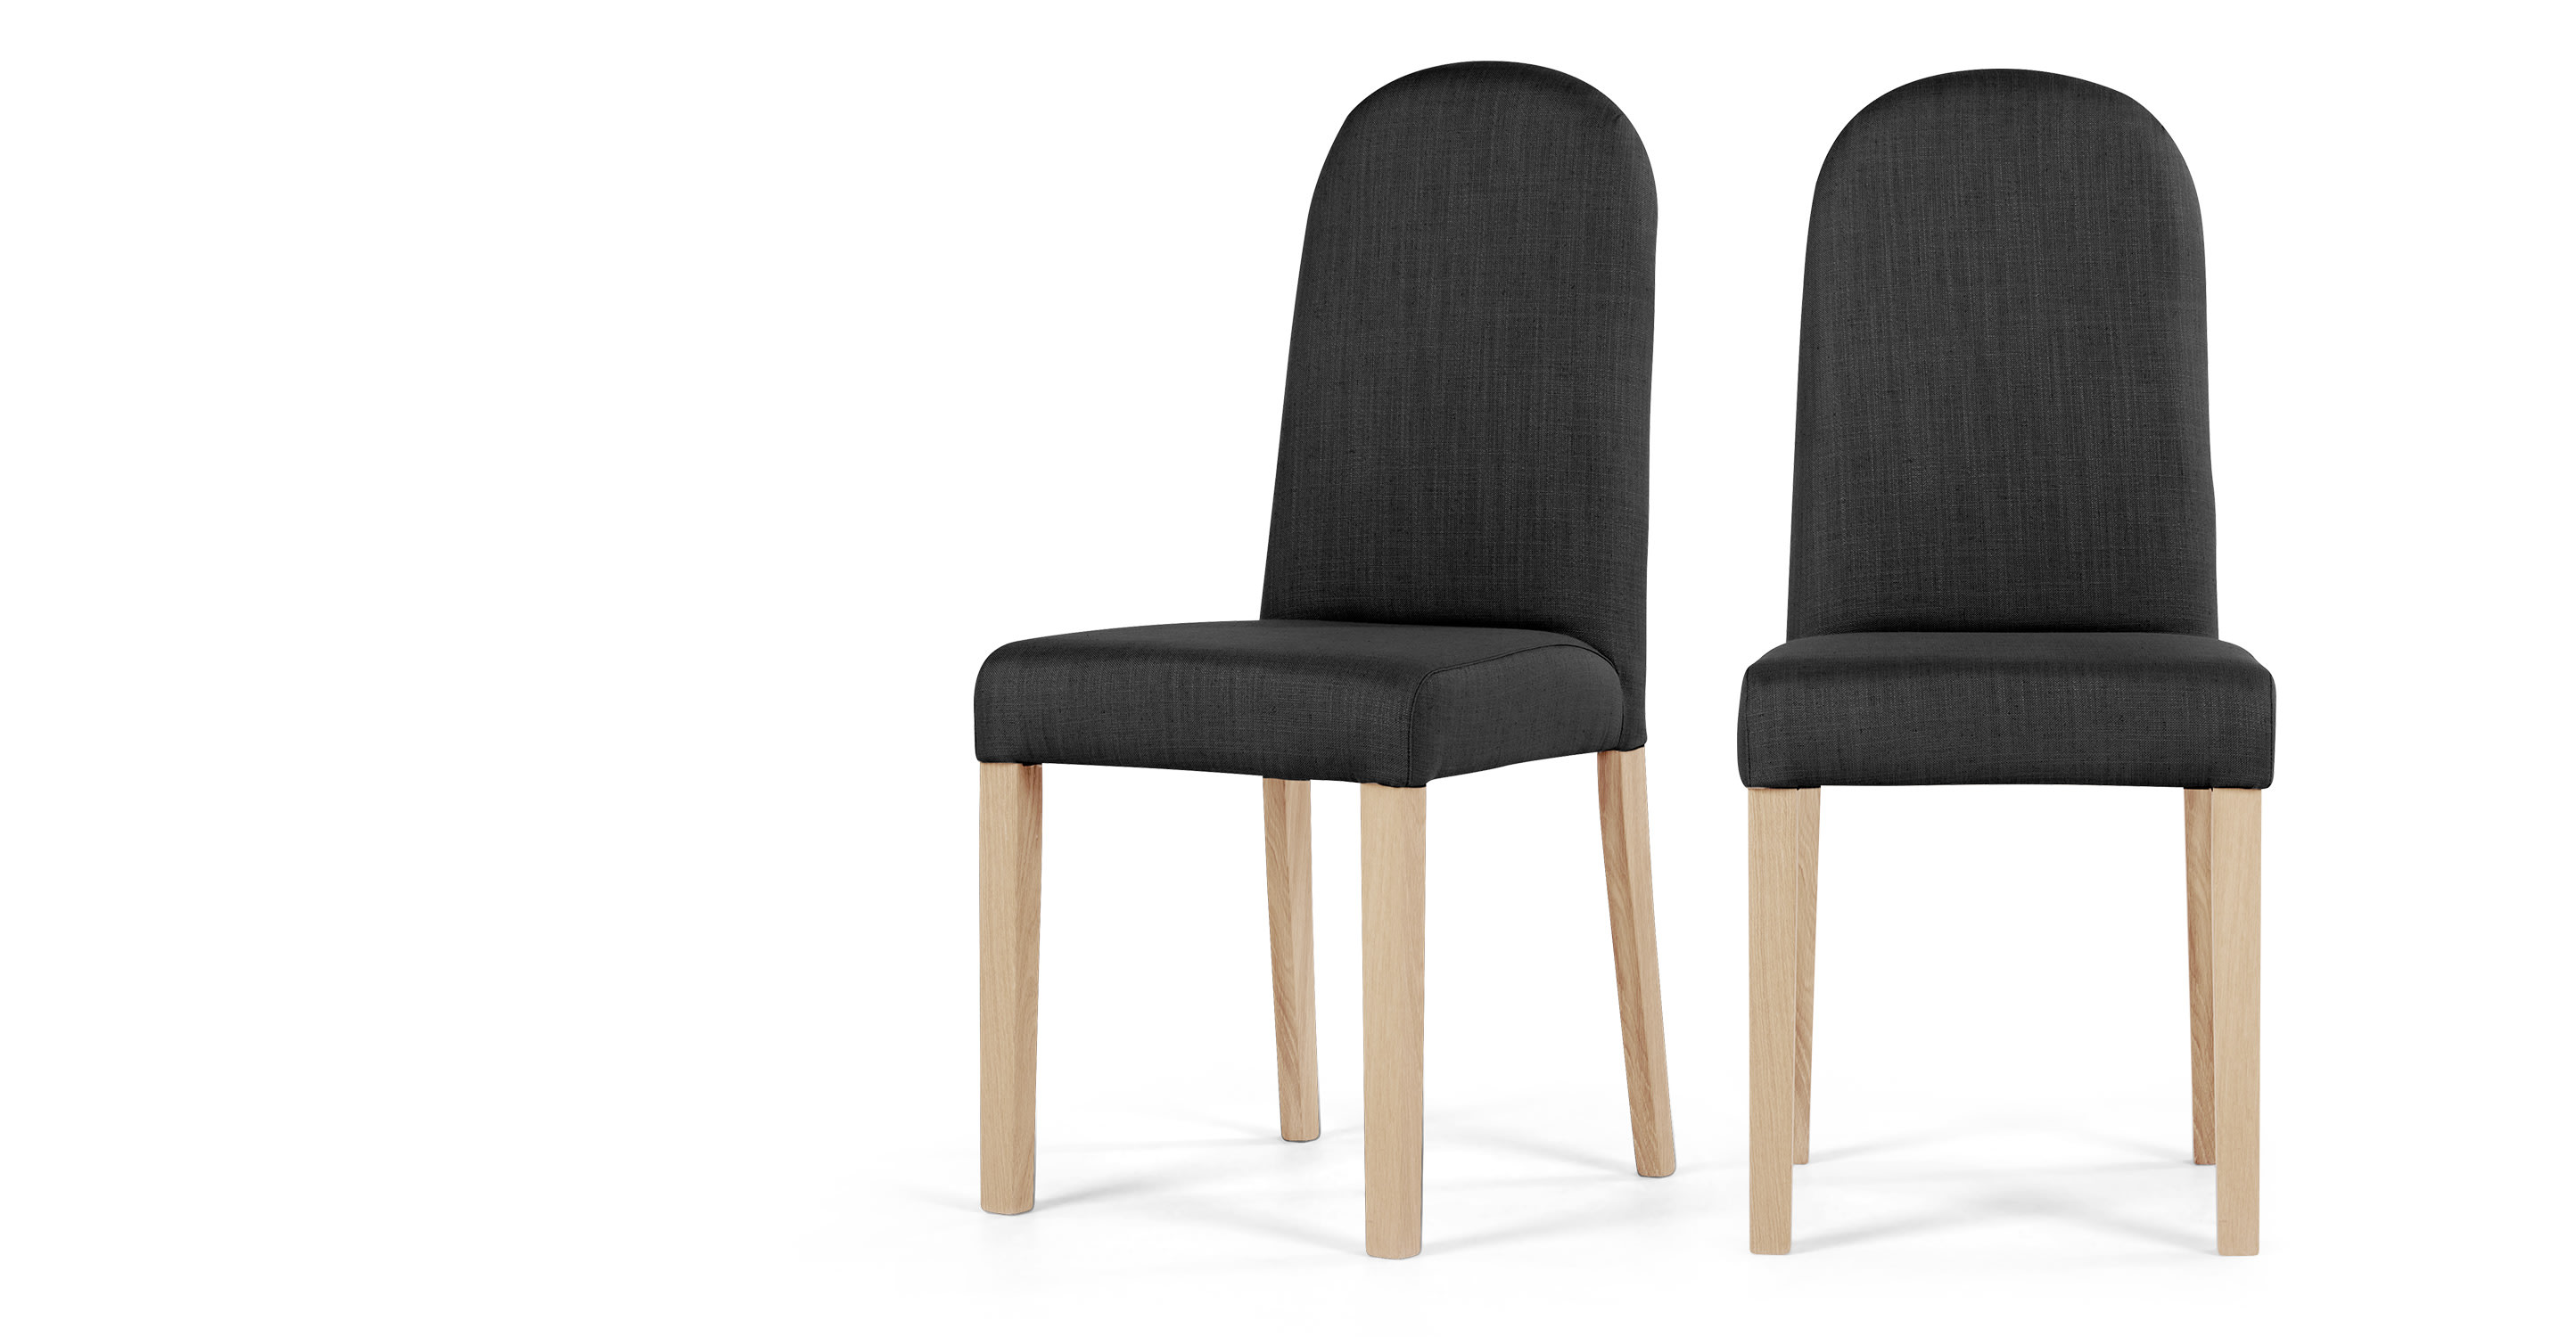 2 x Anouk Dining Chairs Dark Grey and Limed White Oak